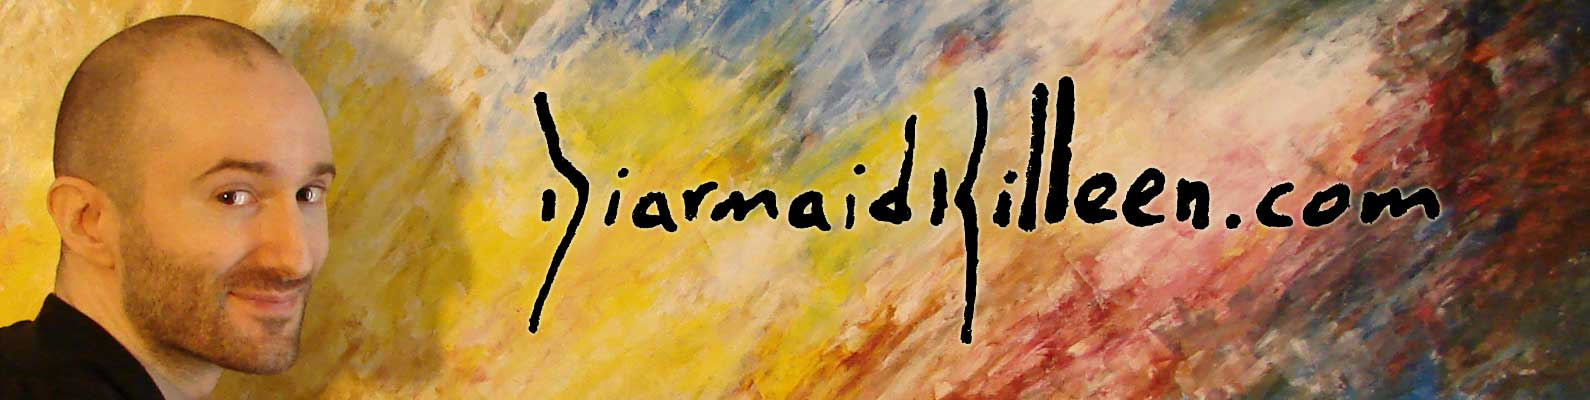 Welcome to DiarmaidKilleen.com, the official hub for the art of Diarmaid Killeen.